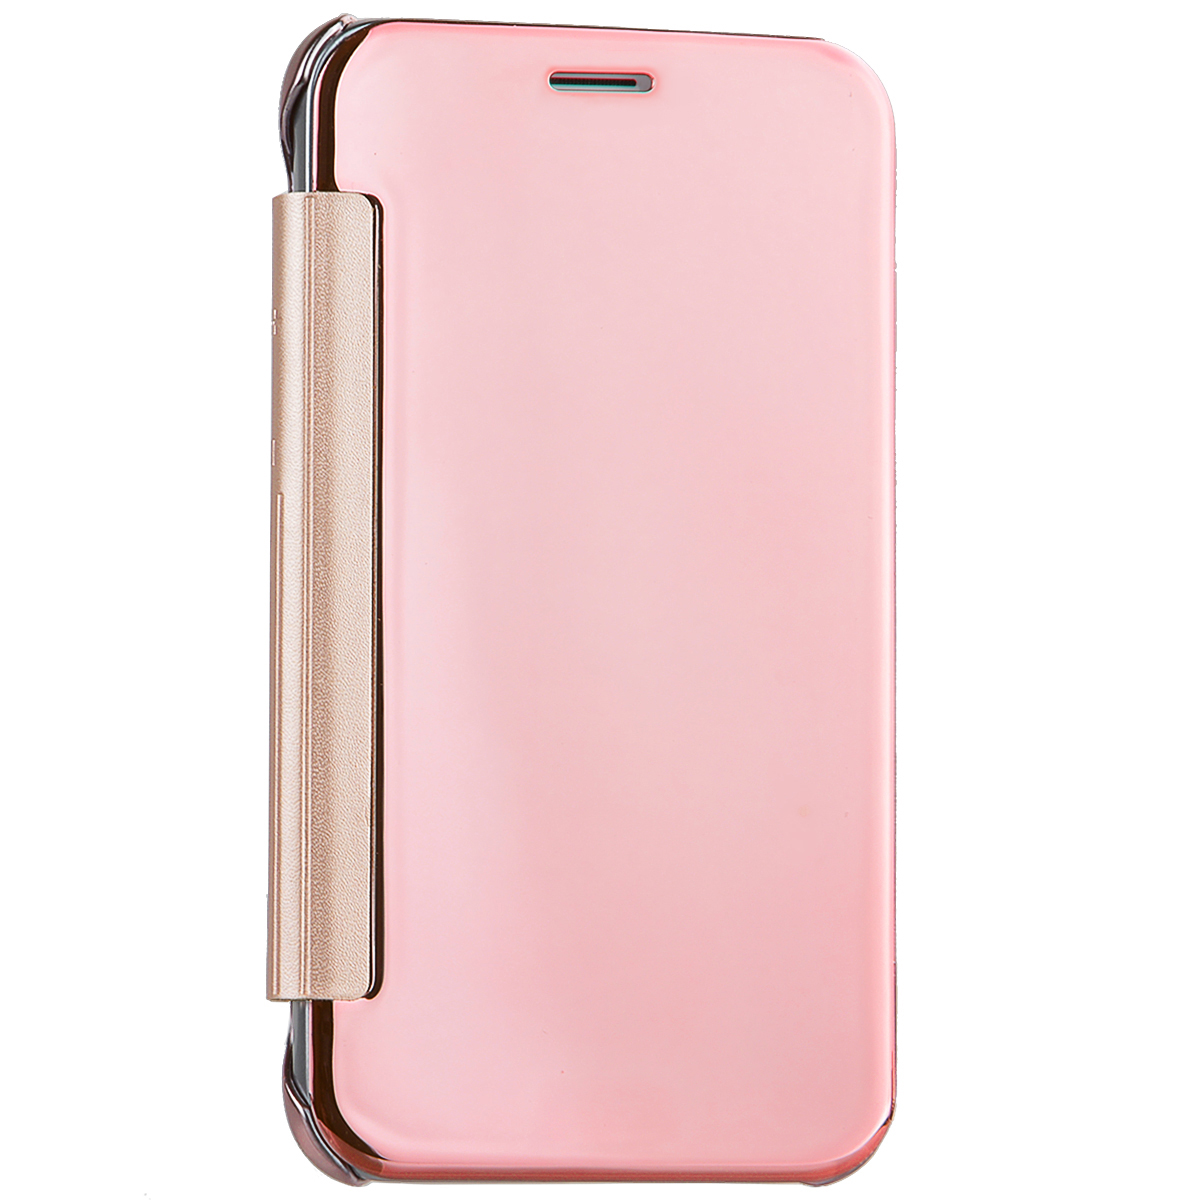 Yokata Luxury Mirror Rose Gold Flip Case para Samsung Galaxy S6 S7 Edge J1 J5 J7 A3 A5 2016 J710 Hard Phone Protect Cover